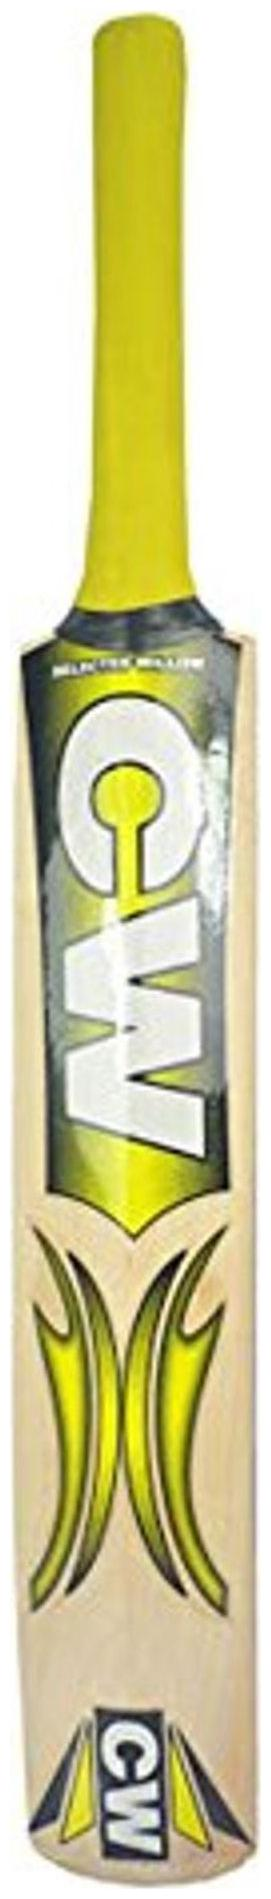 Junio Tennis Cricket Bat Size No.6